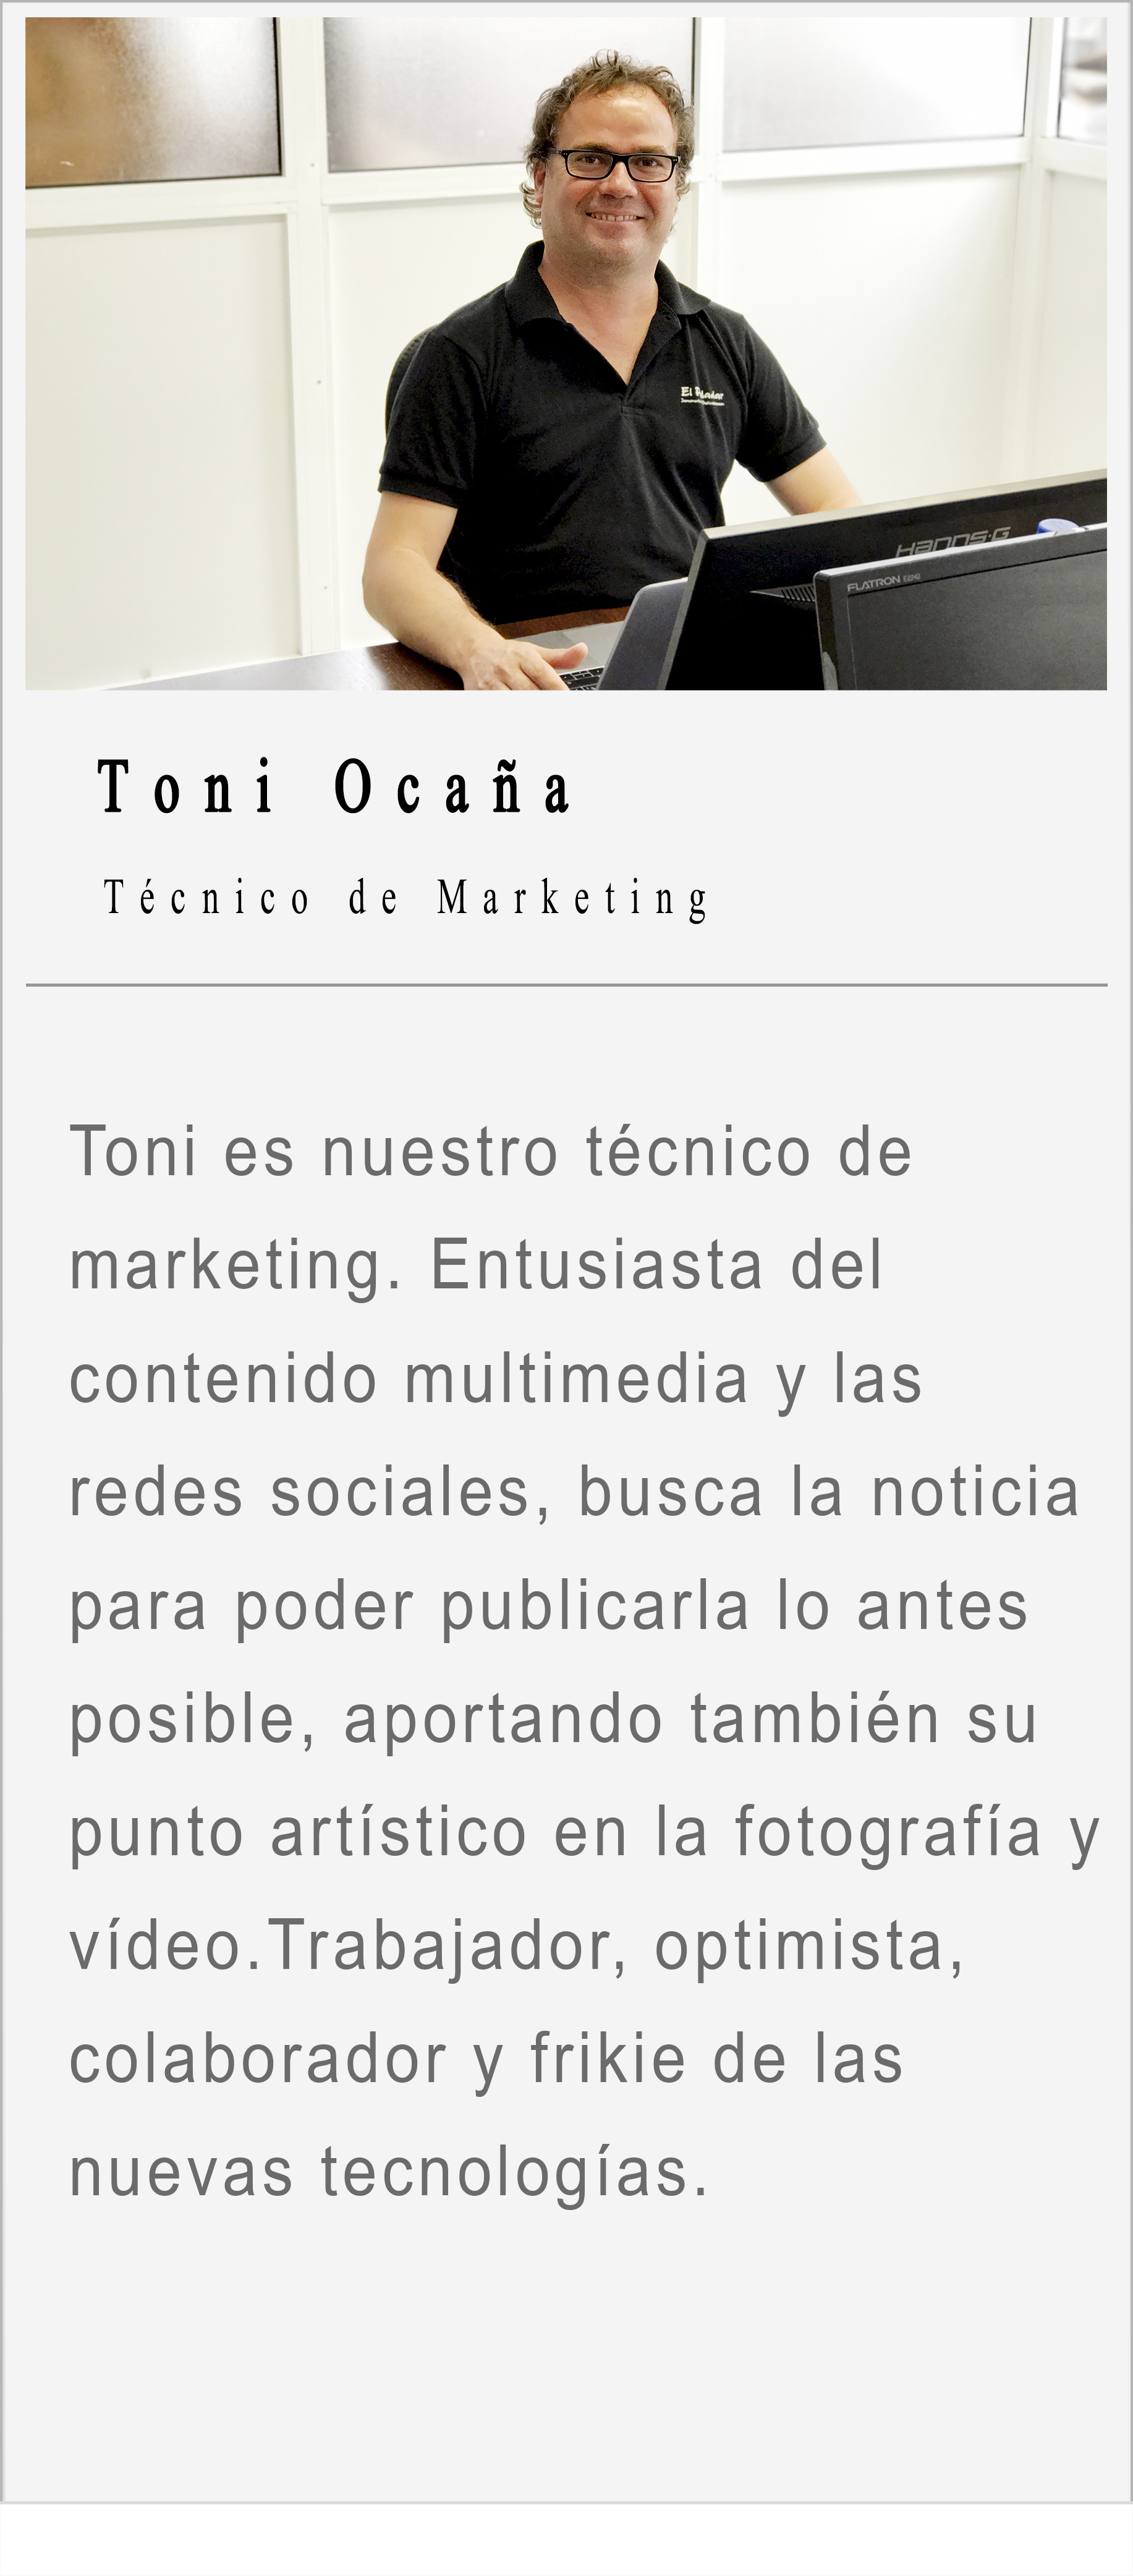 Toni Ocanya - Técnico de Marketing - Equipo El Paladar